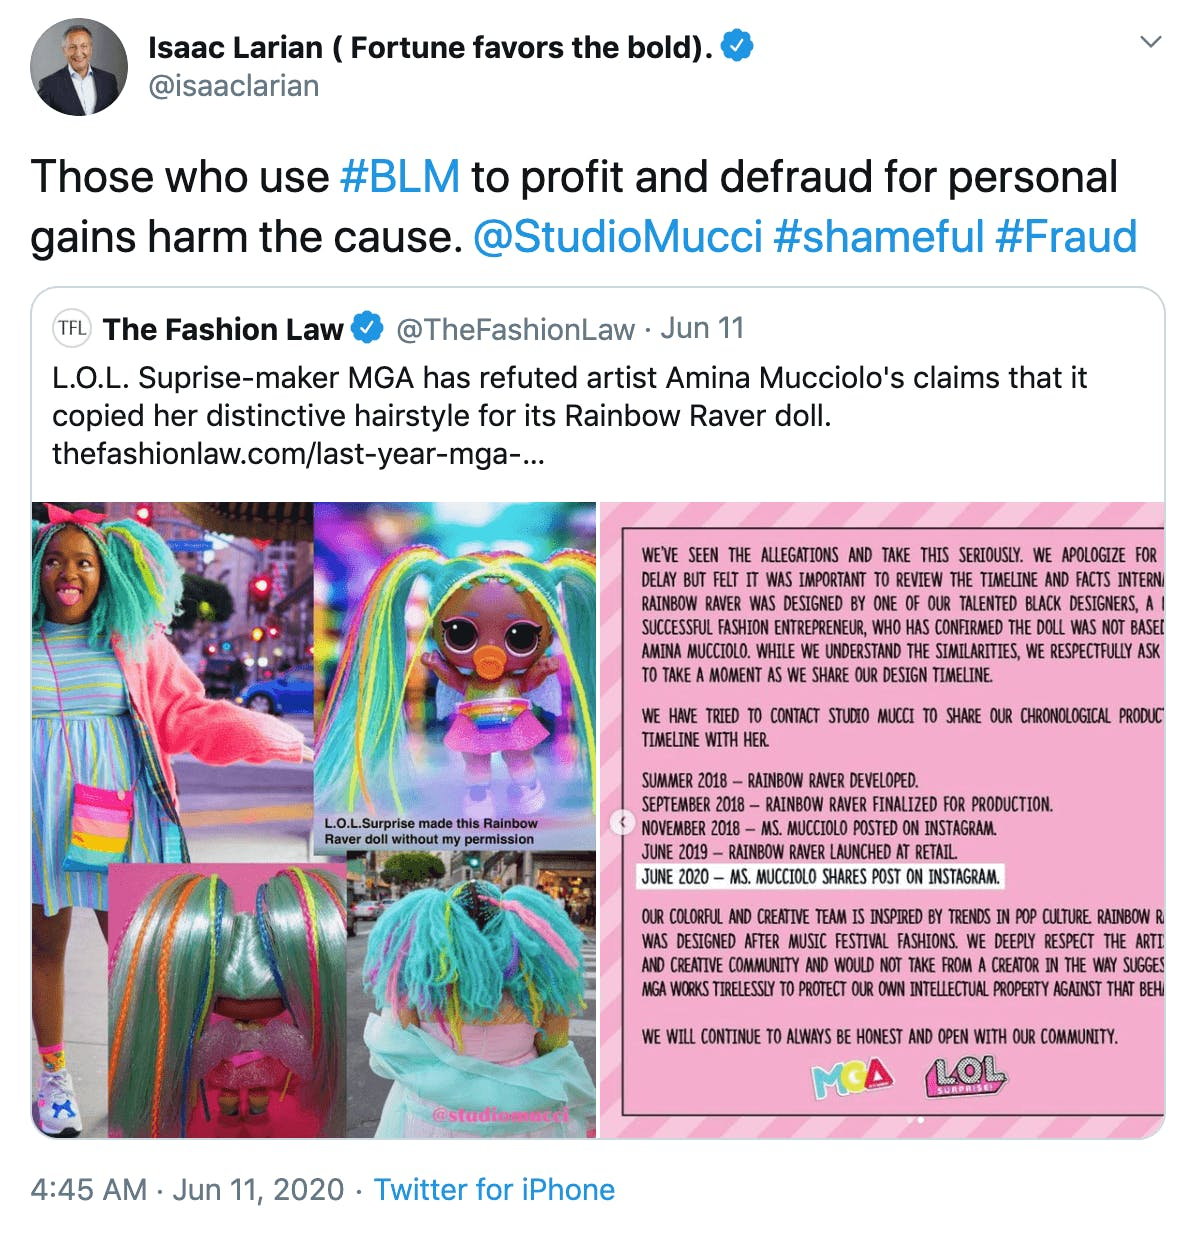 Those who use #BLM to profit and defraud for personal gains harm the cause.  @StudioMucci  #shameful #Fraud